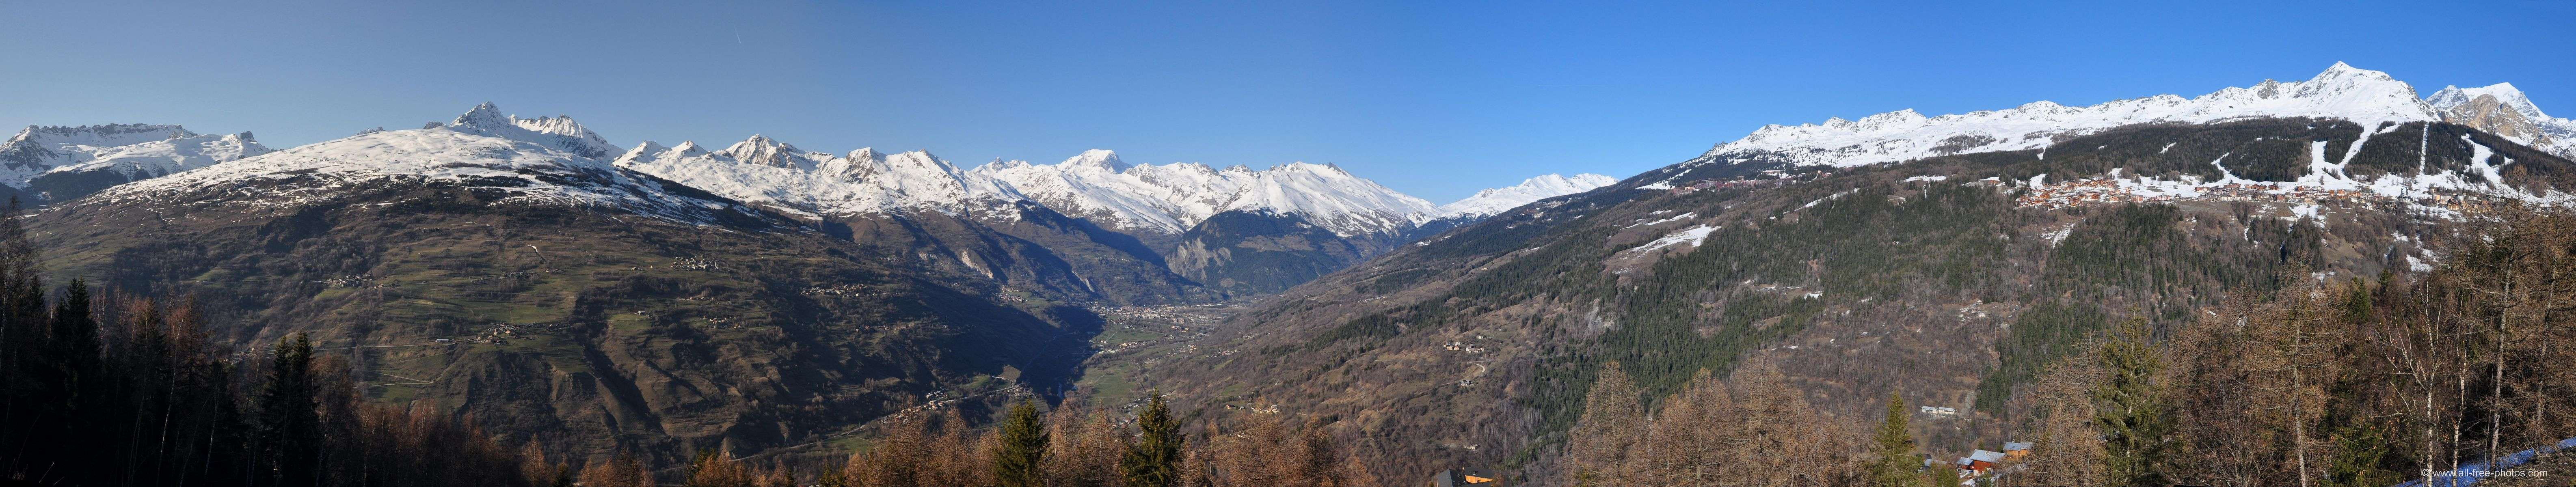 Mont Blanc, Valley of the Isere river and Les Arcs - France